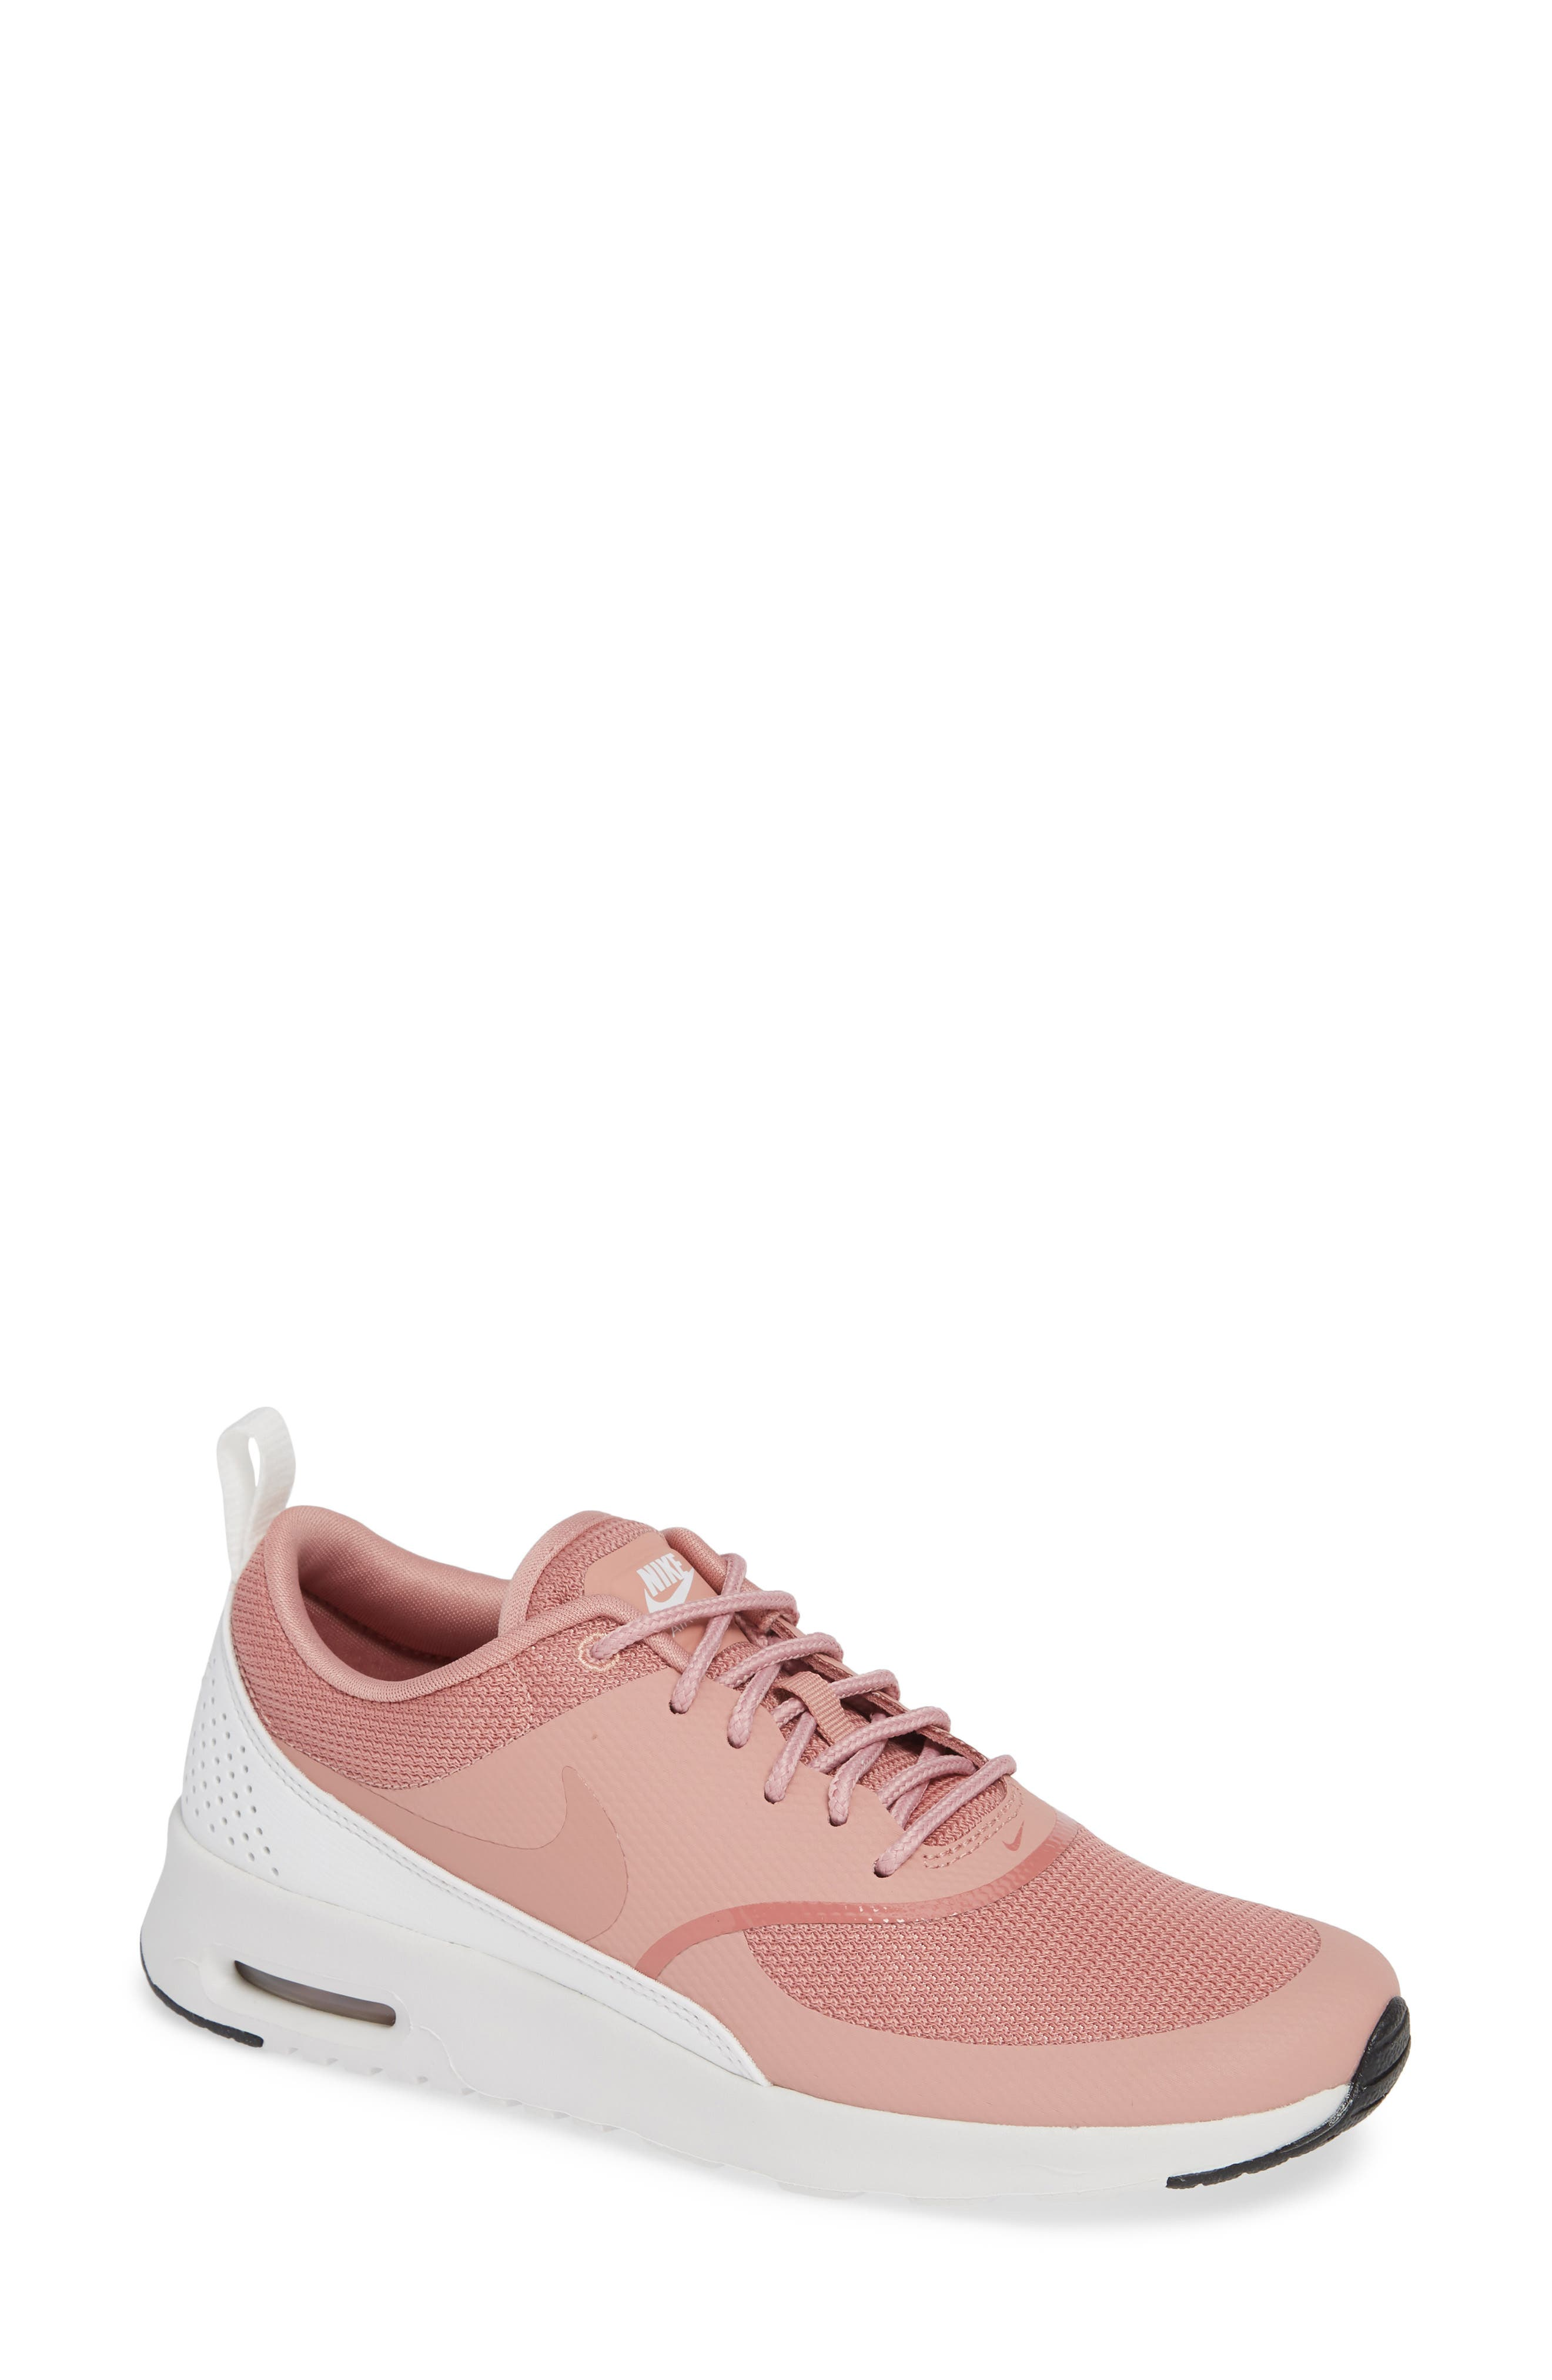 canada nike air max thea pink 6039f dff64